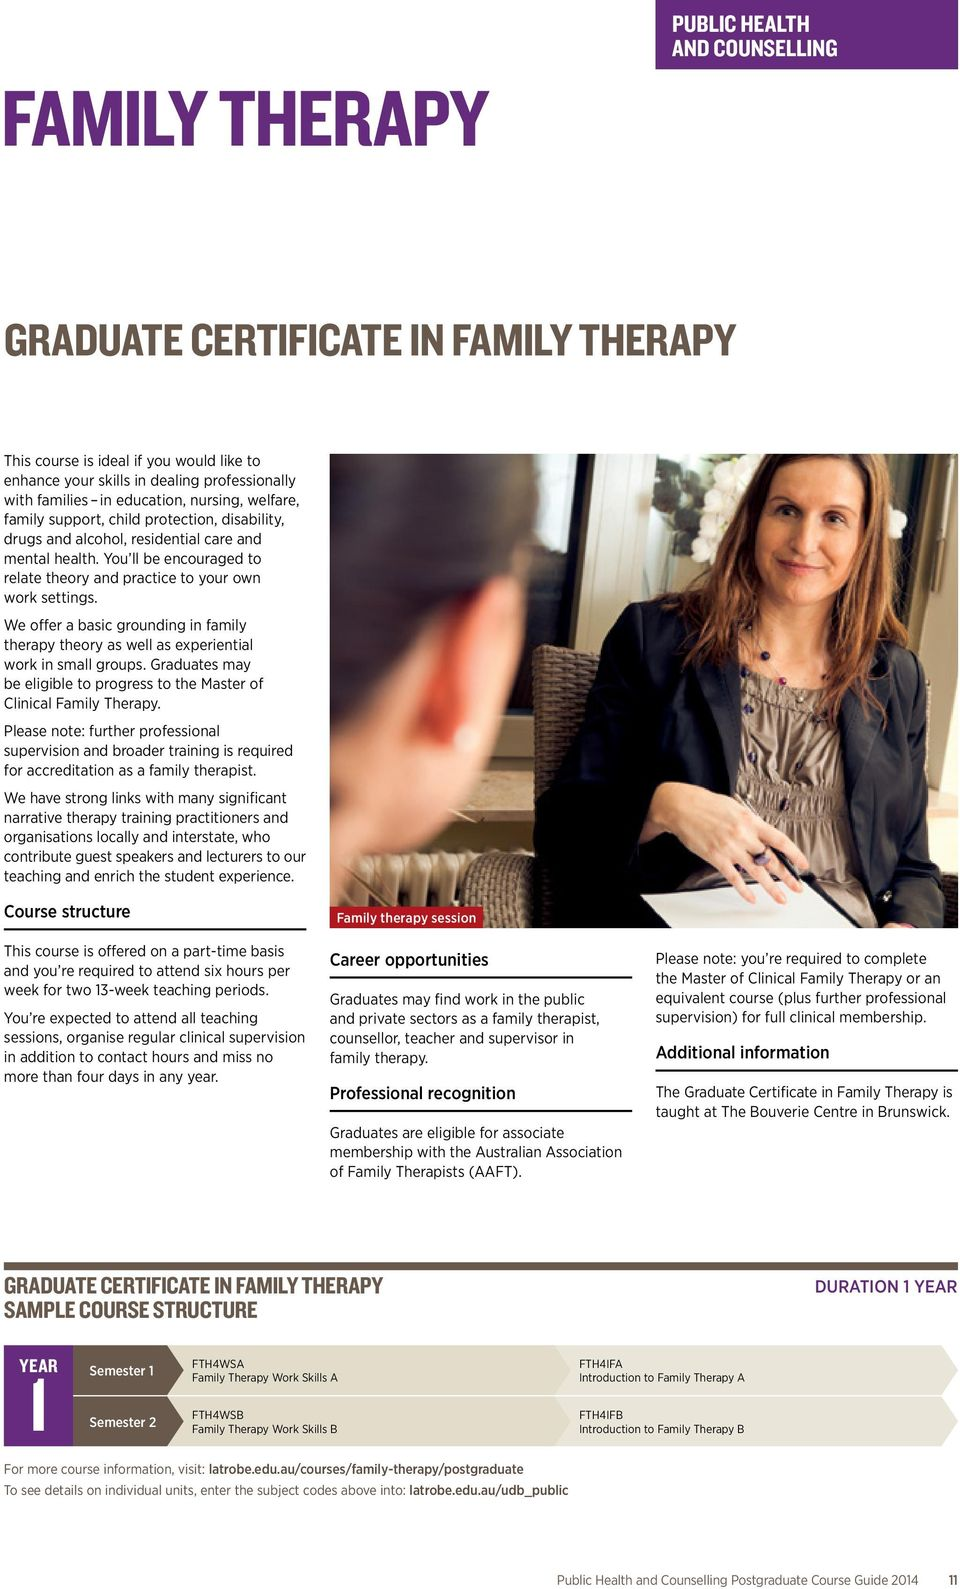 We offer a basic grounding in family therapy theory as well as experiential work in small groups. Graduates may be eligible to progress to the Master of Clinical Family Therapy.